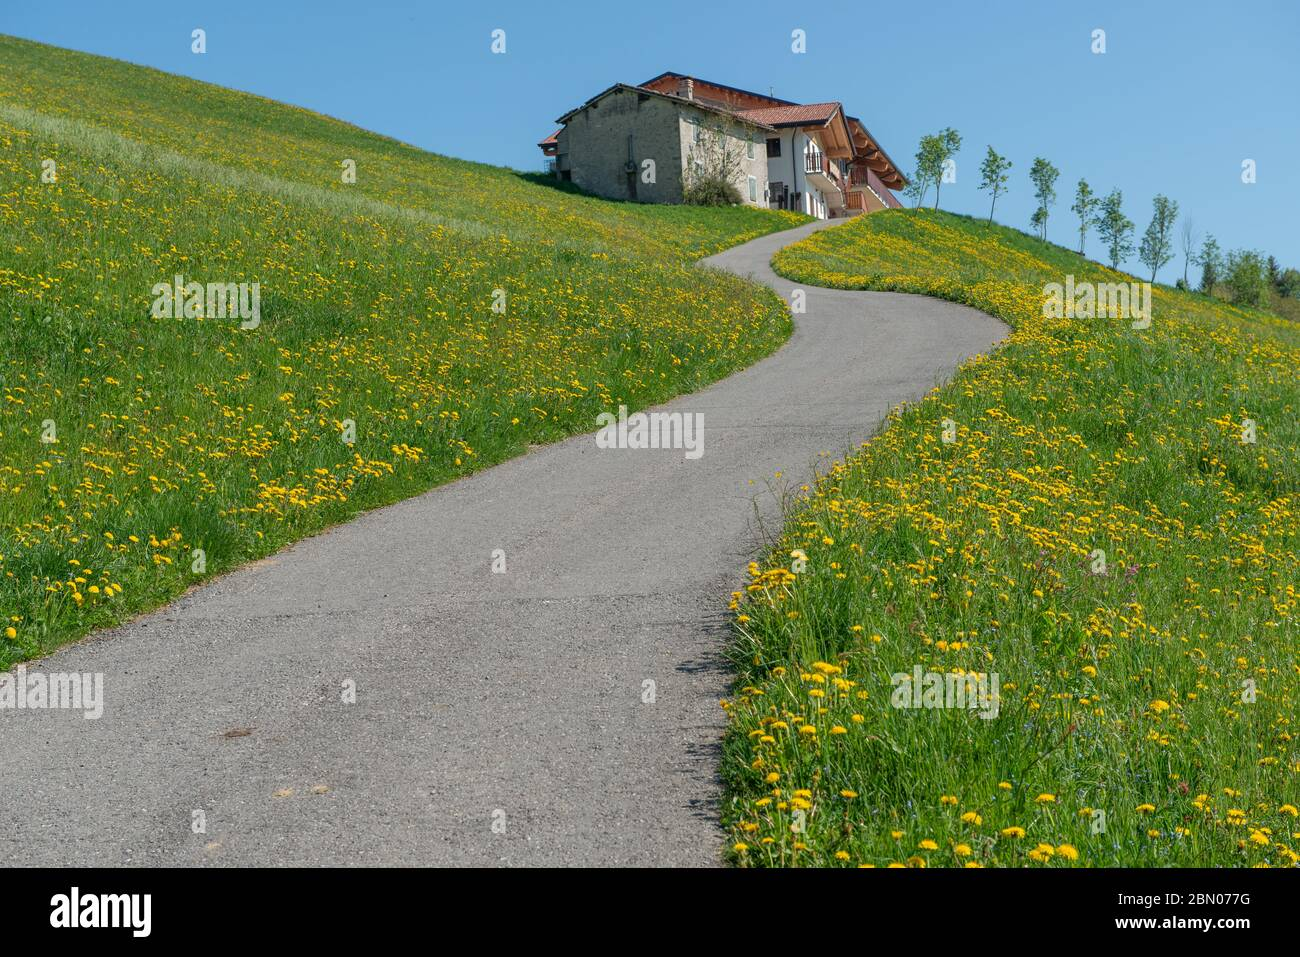 road that connects the house to the hills Stock Photo